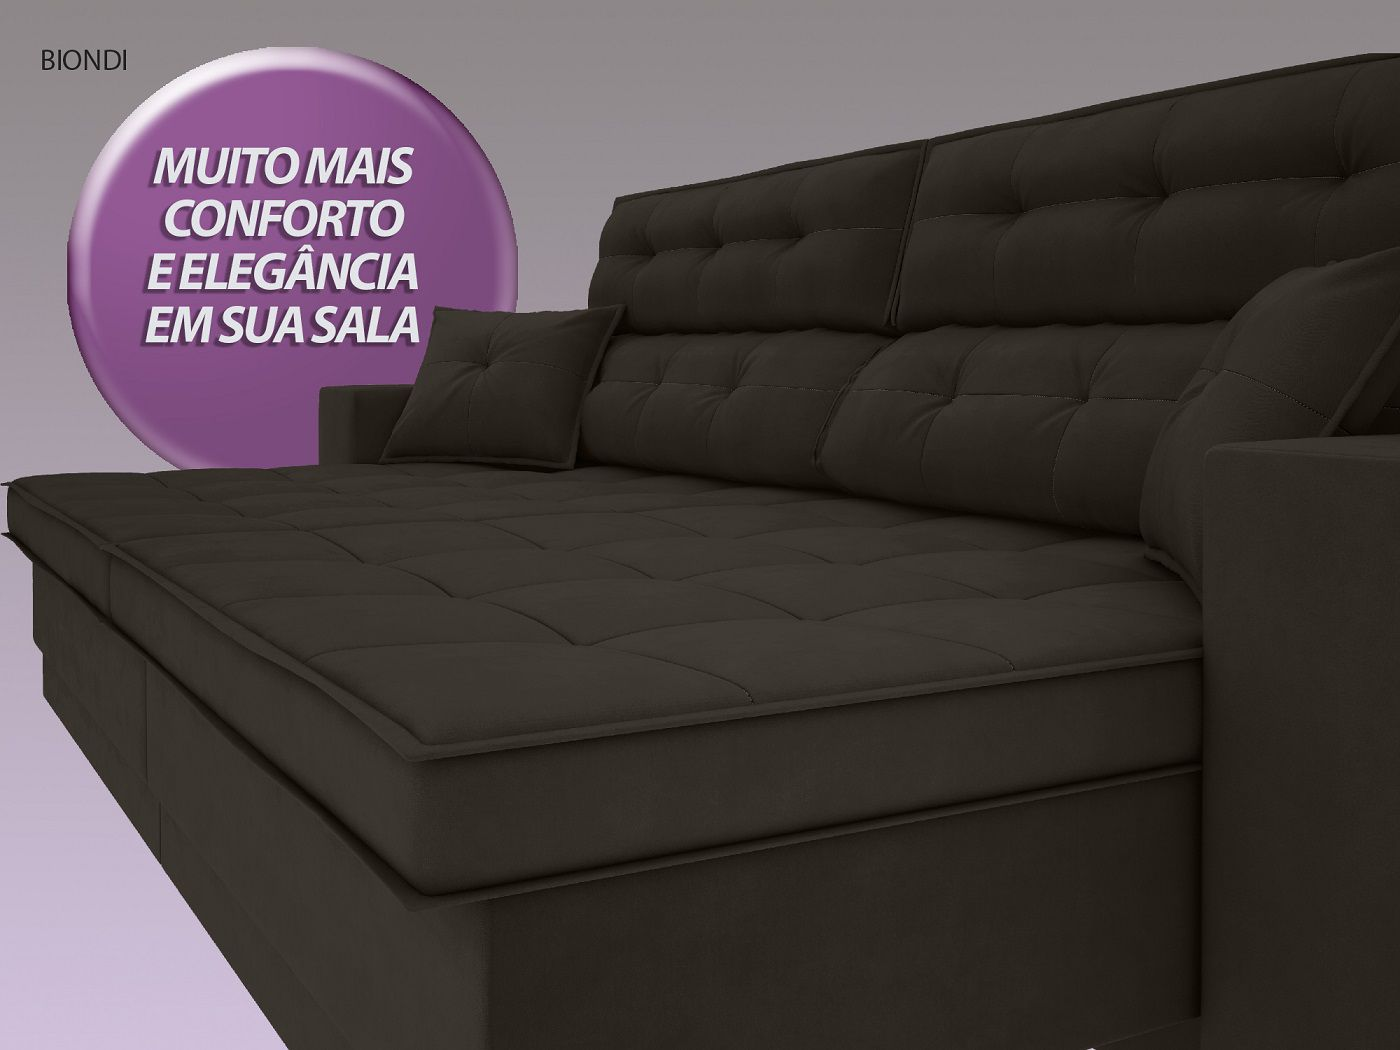 Sofá New Biondi 2,30m Retrátil e Reclinável Velosuede Chocolate  - NETSOFAS